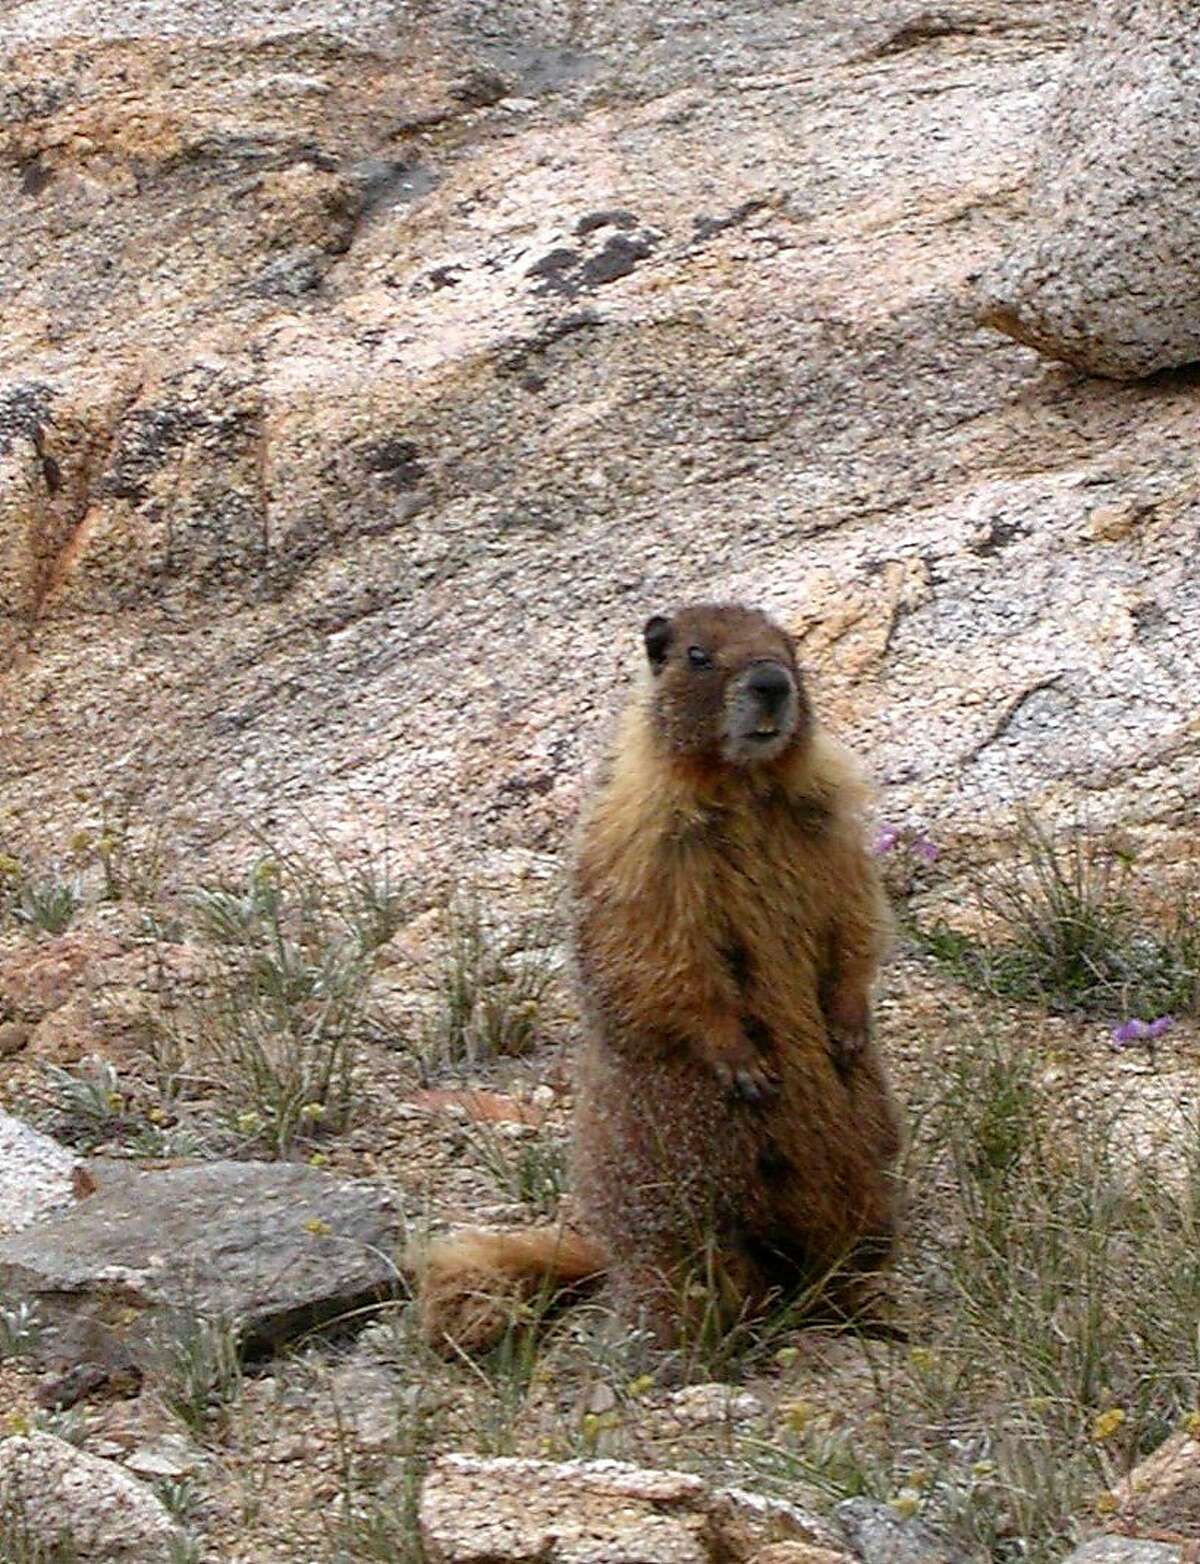 Marmots, which live in the high Sierra above tree line, have already gone into hibernation in Yosemite National Park. Biologists believe they were driven into hibernation early because they sensed impending big snows.